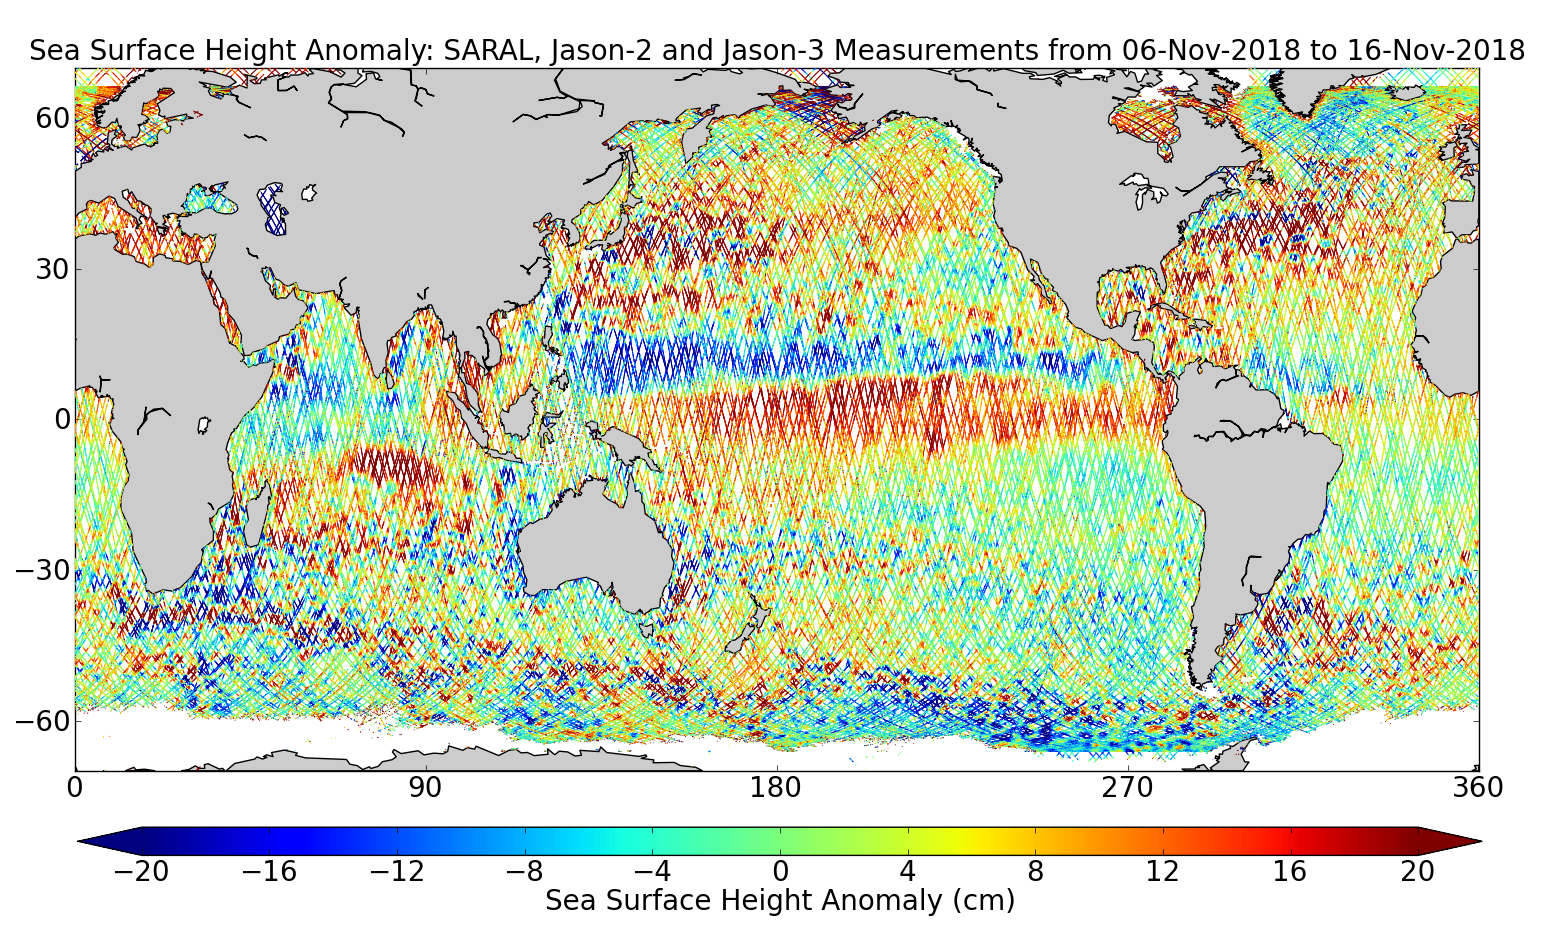 Sea Surface Height Anomaly: SARAL, Jason-2 and Jason-3 Measurements from 06-Nov-2018 to 16-Nov-2018